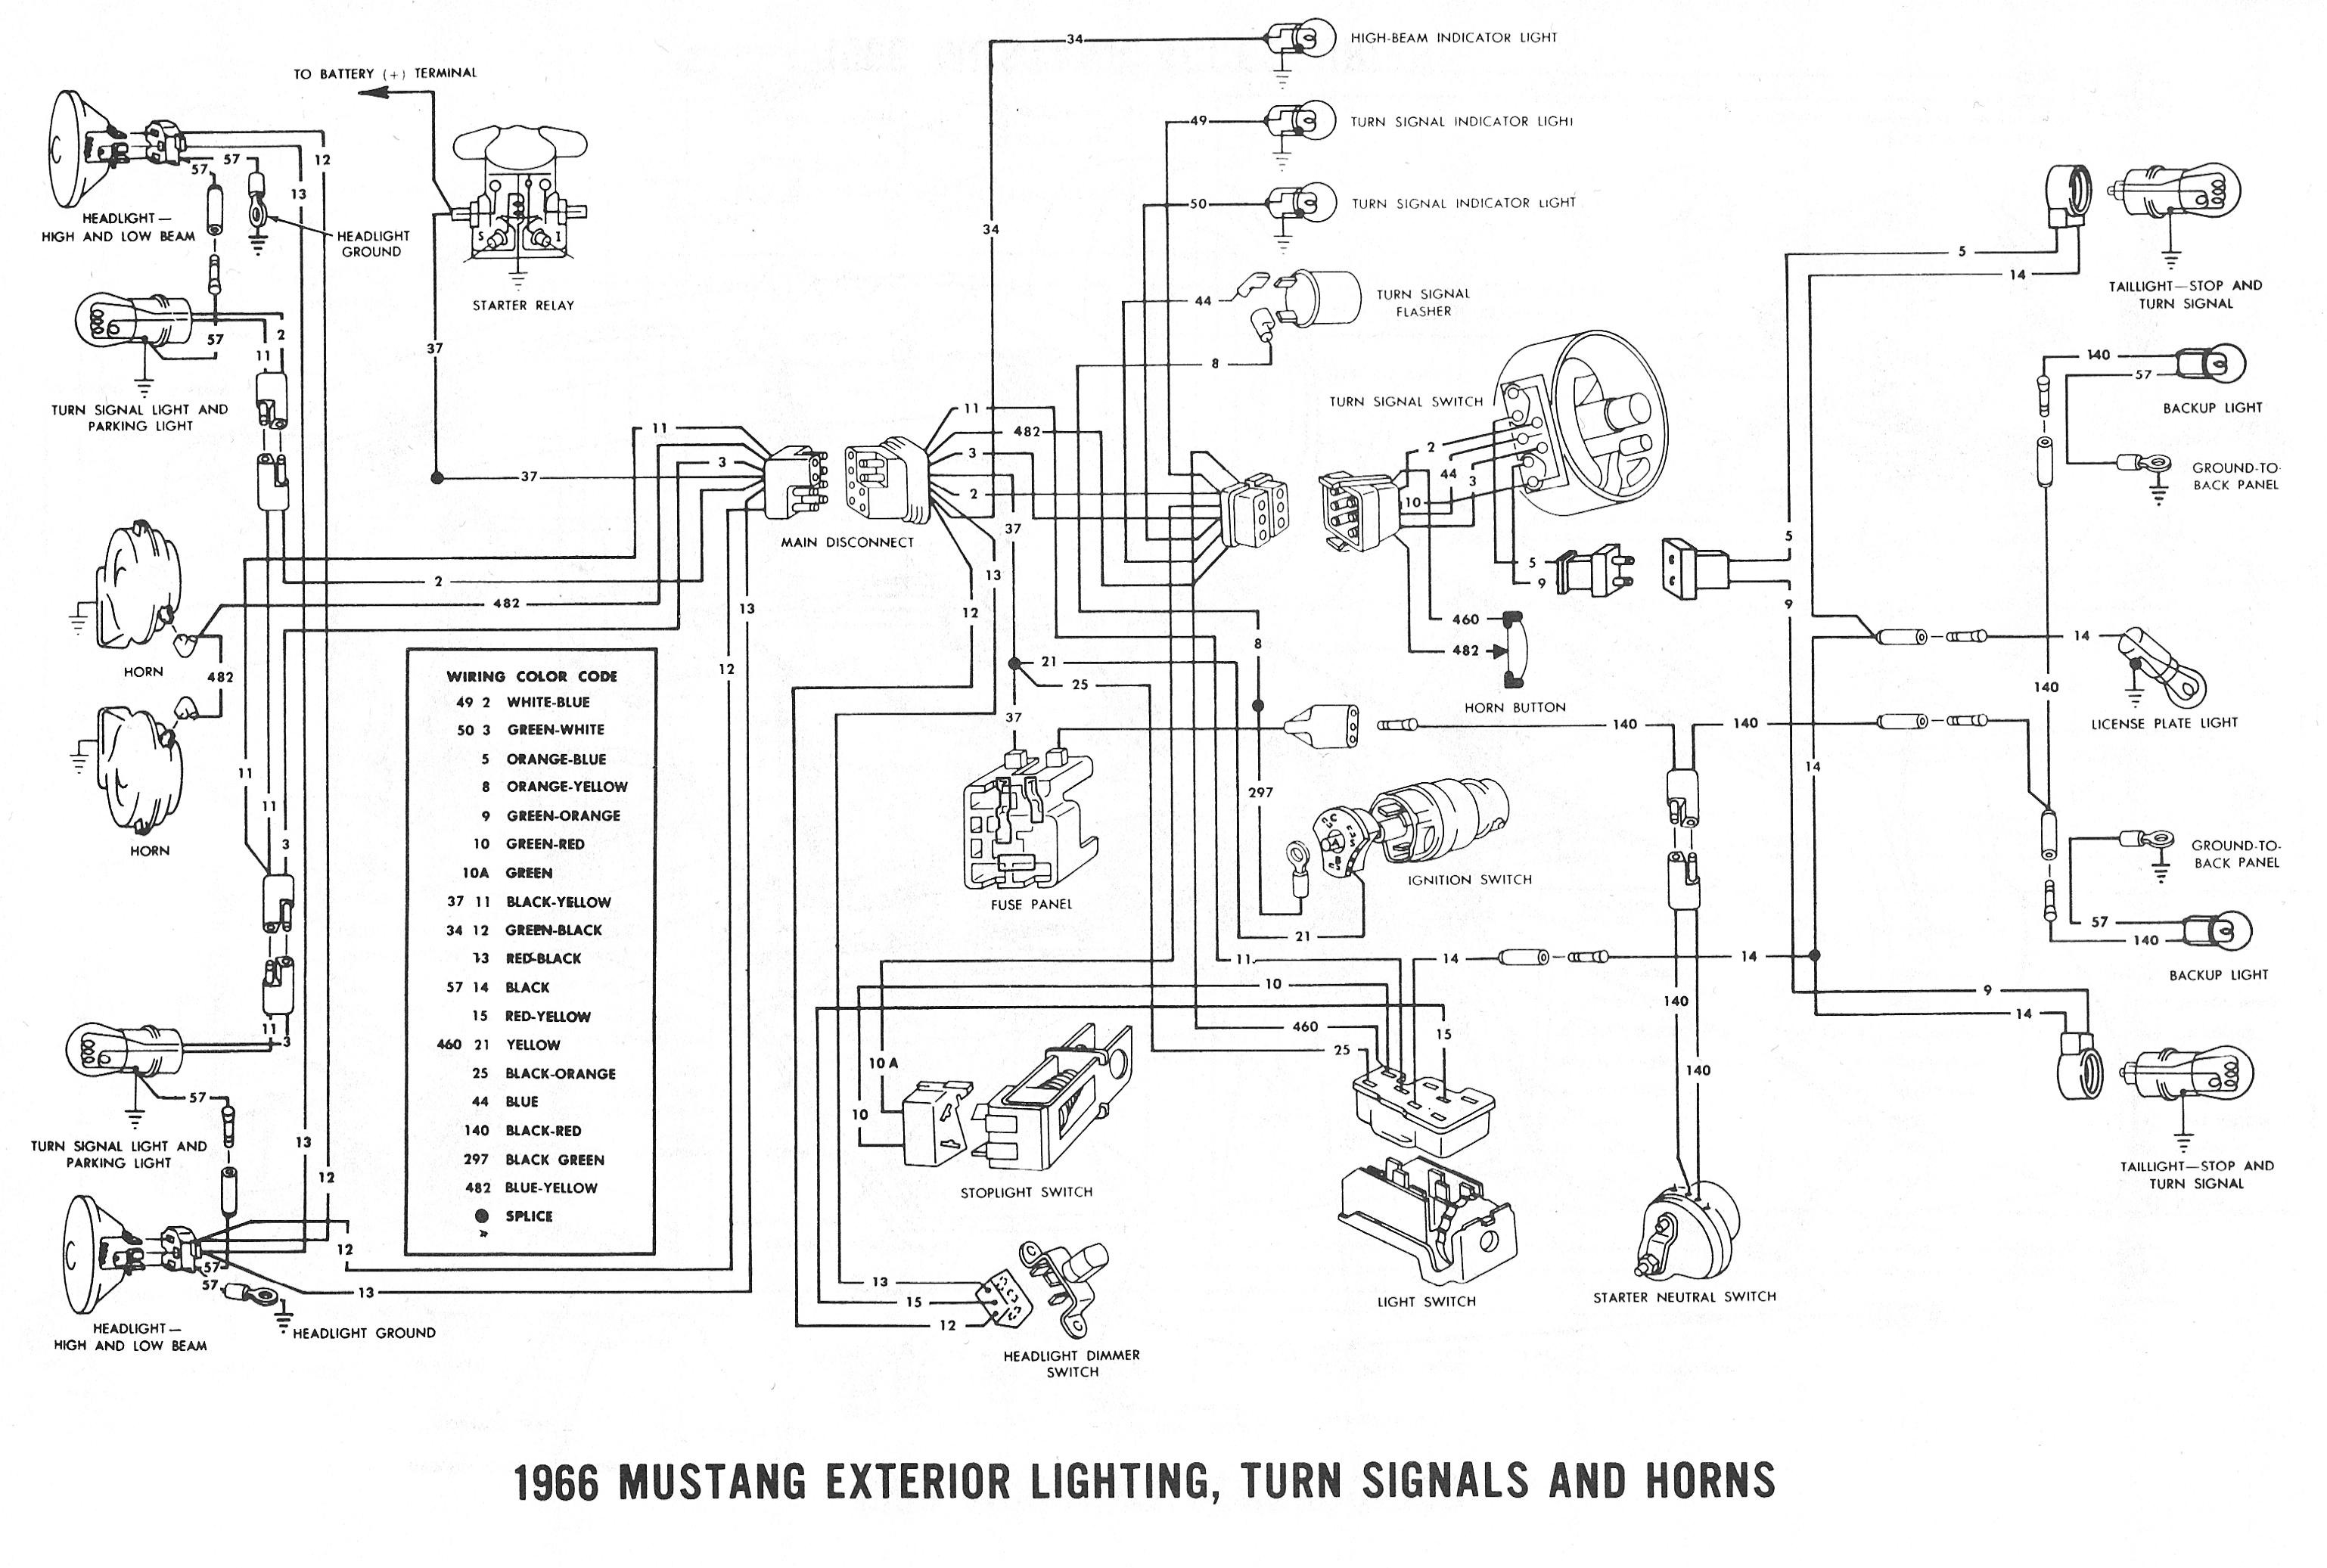 1966 Mustang Wiring Diagram ford F100 Heater Wiring Diagram Get Free Image  About Wiring Diagram Of